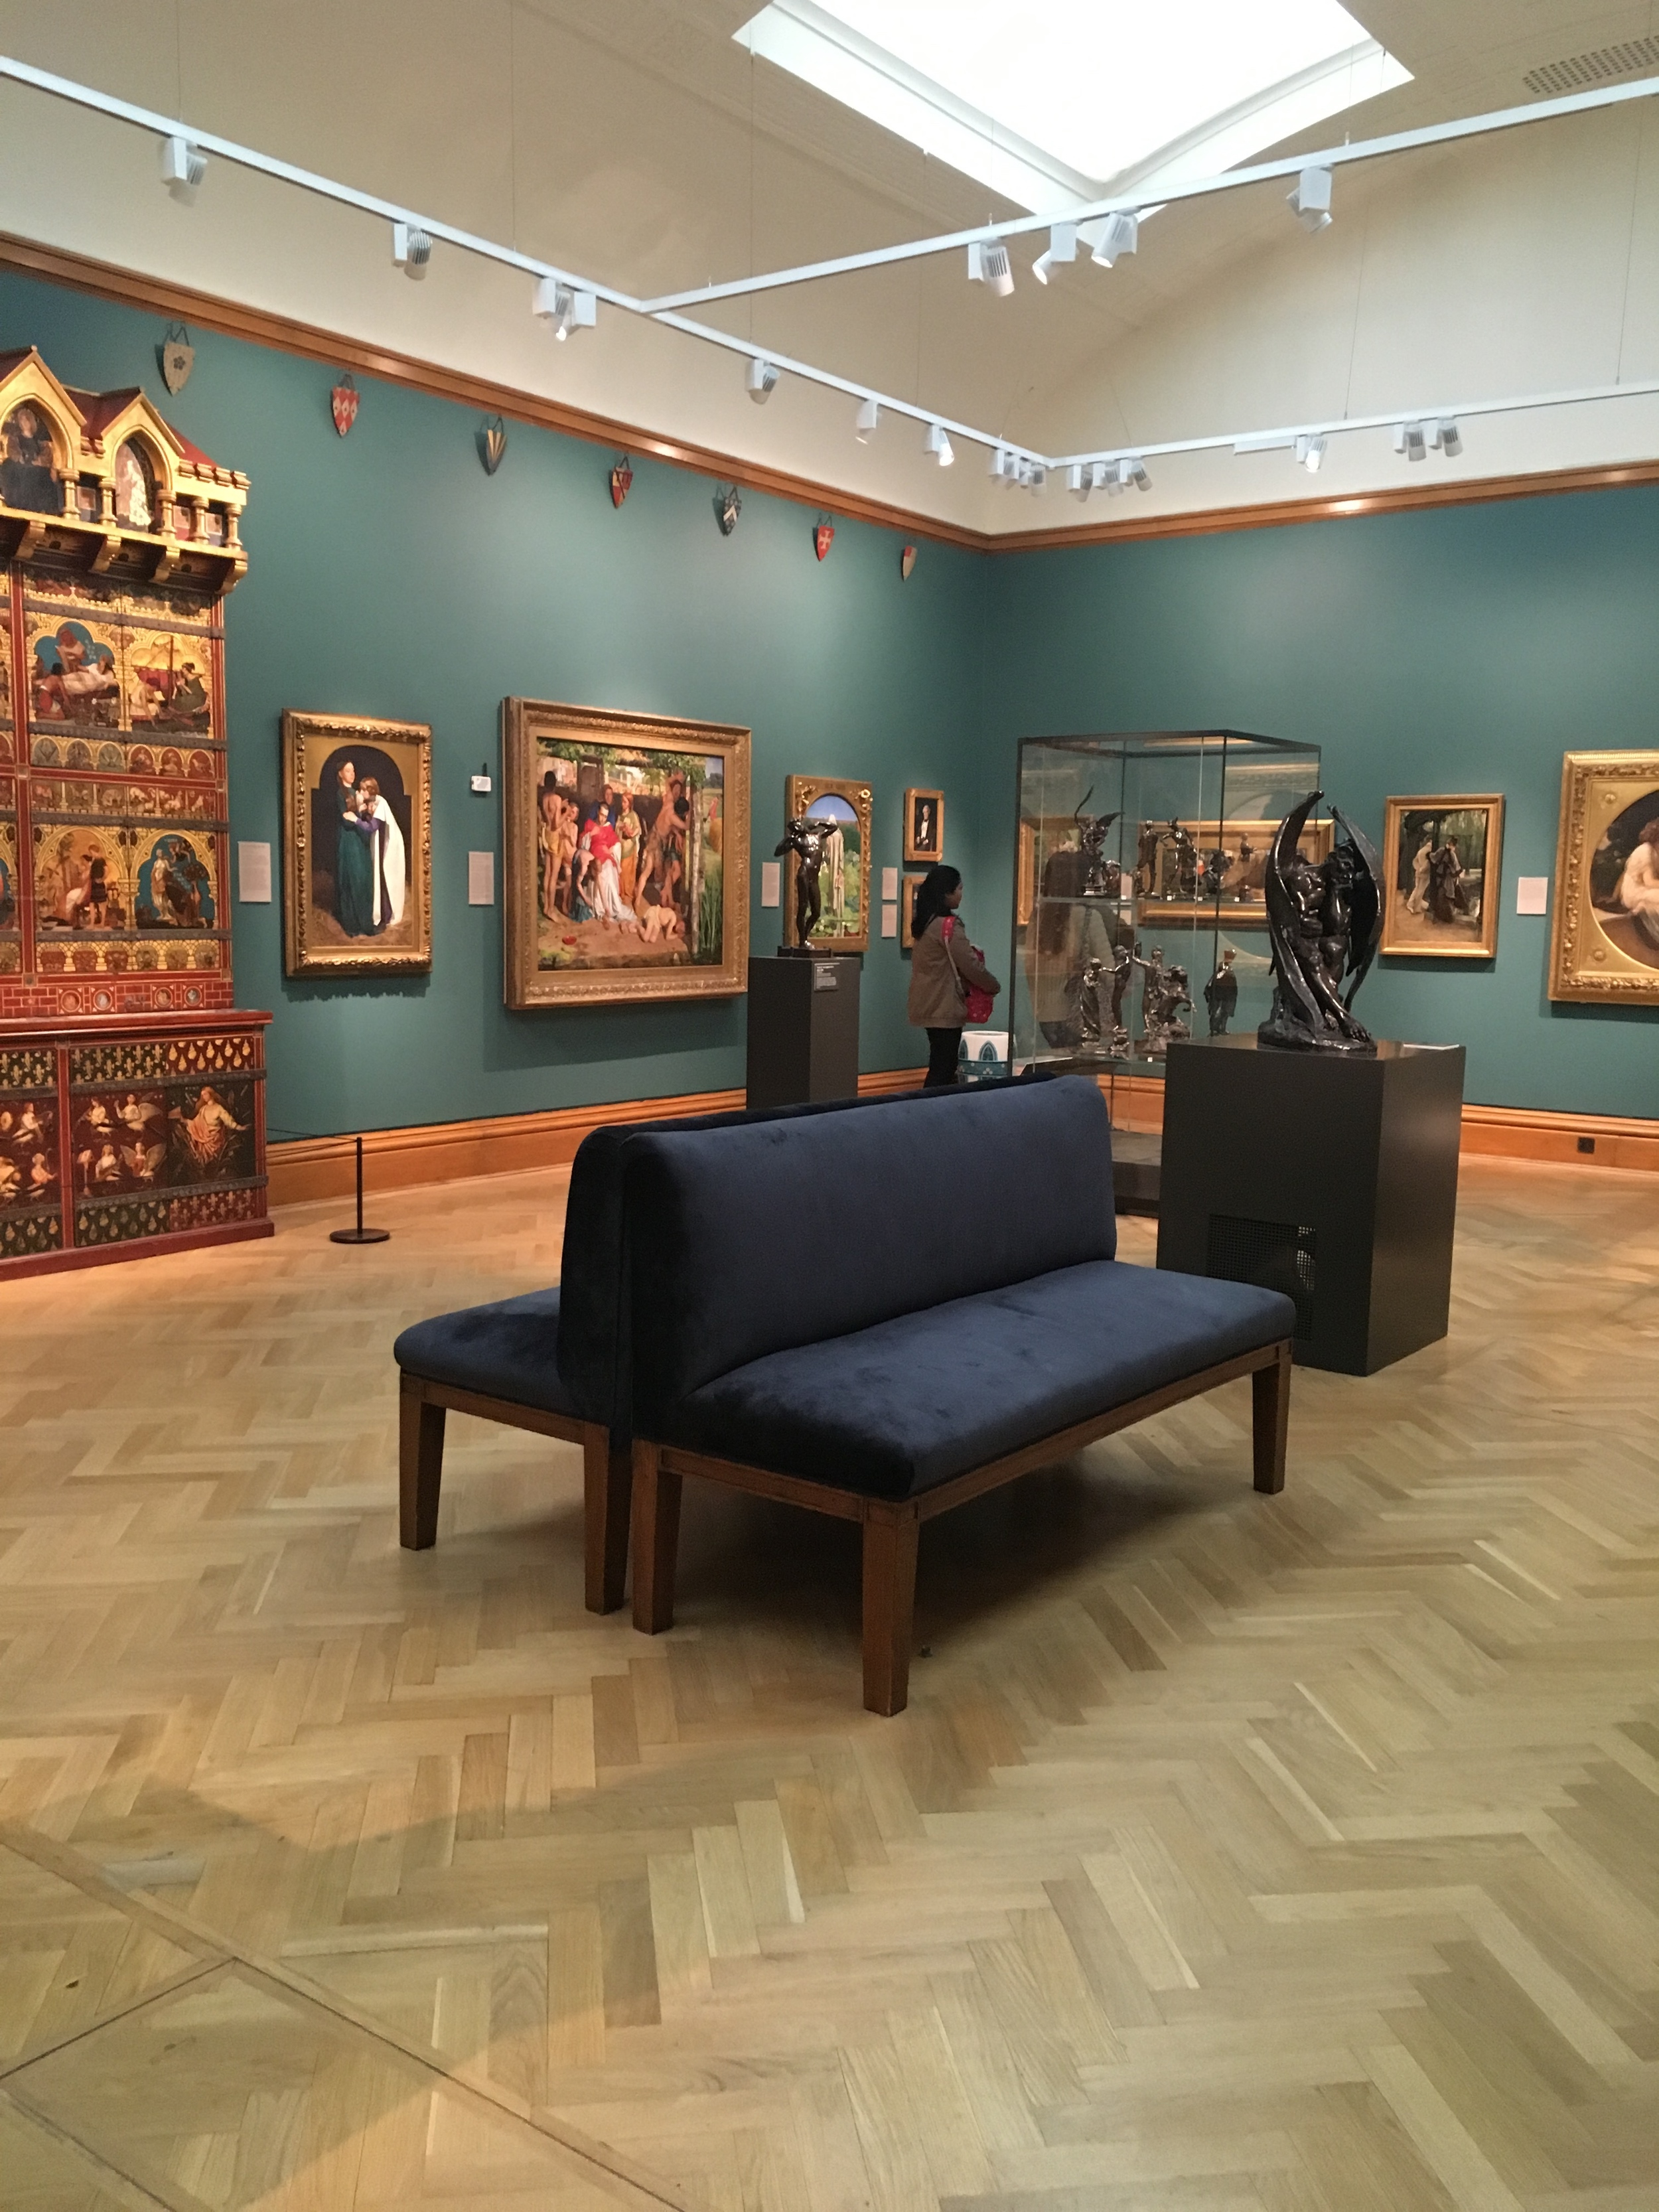 It was a great privilege to be asked to do some work for Ashmolean in Oxford recently. I worked on a number of pieces that can be found in various galleries around the museum, some of which date back to the 1860s.